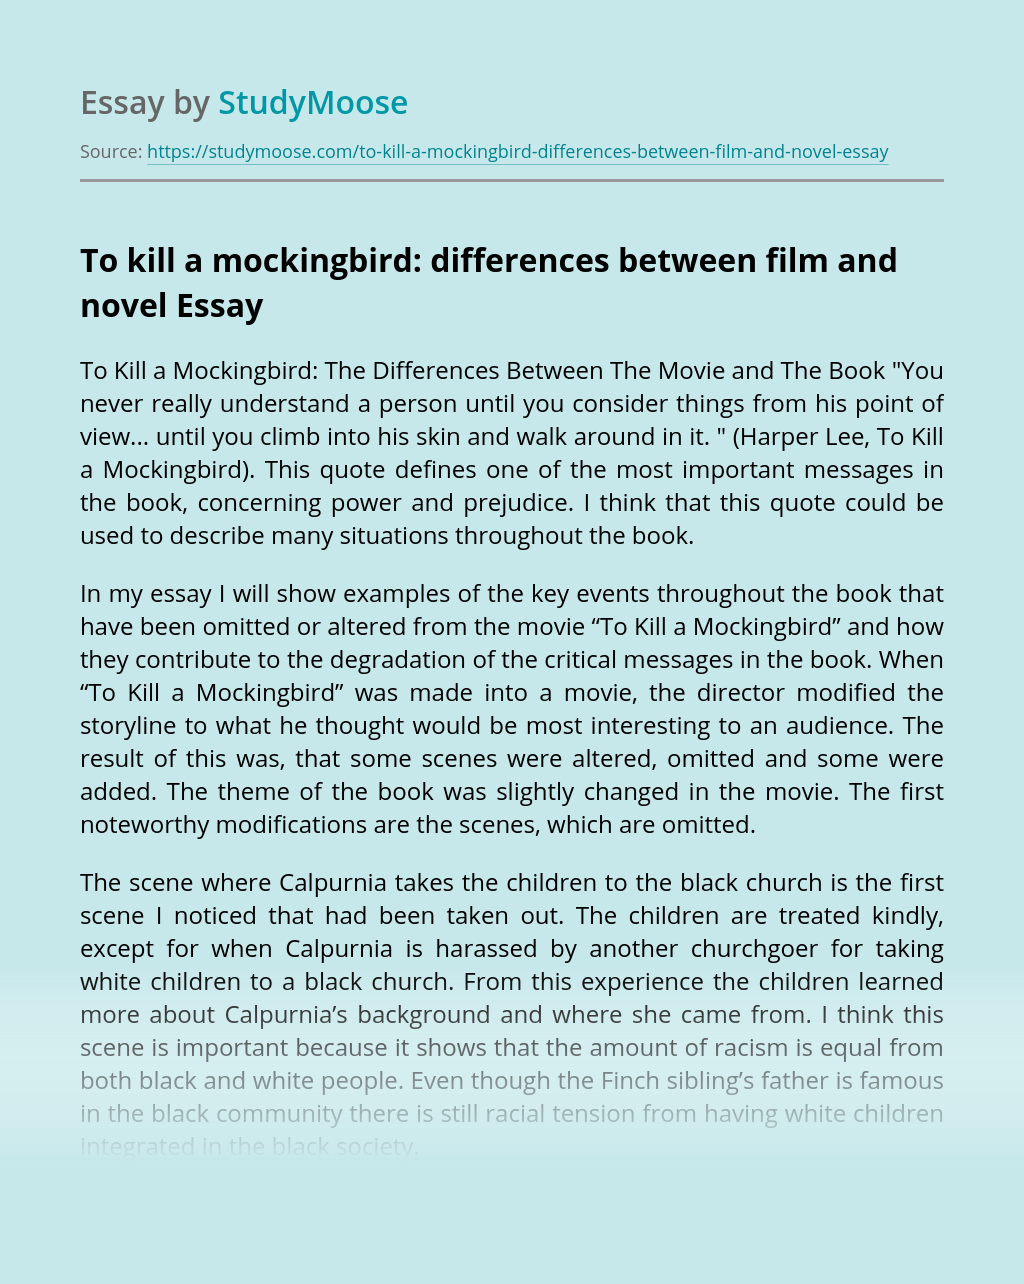 To kill a mockingbird: differences between film and novel